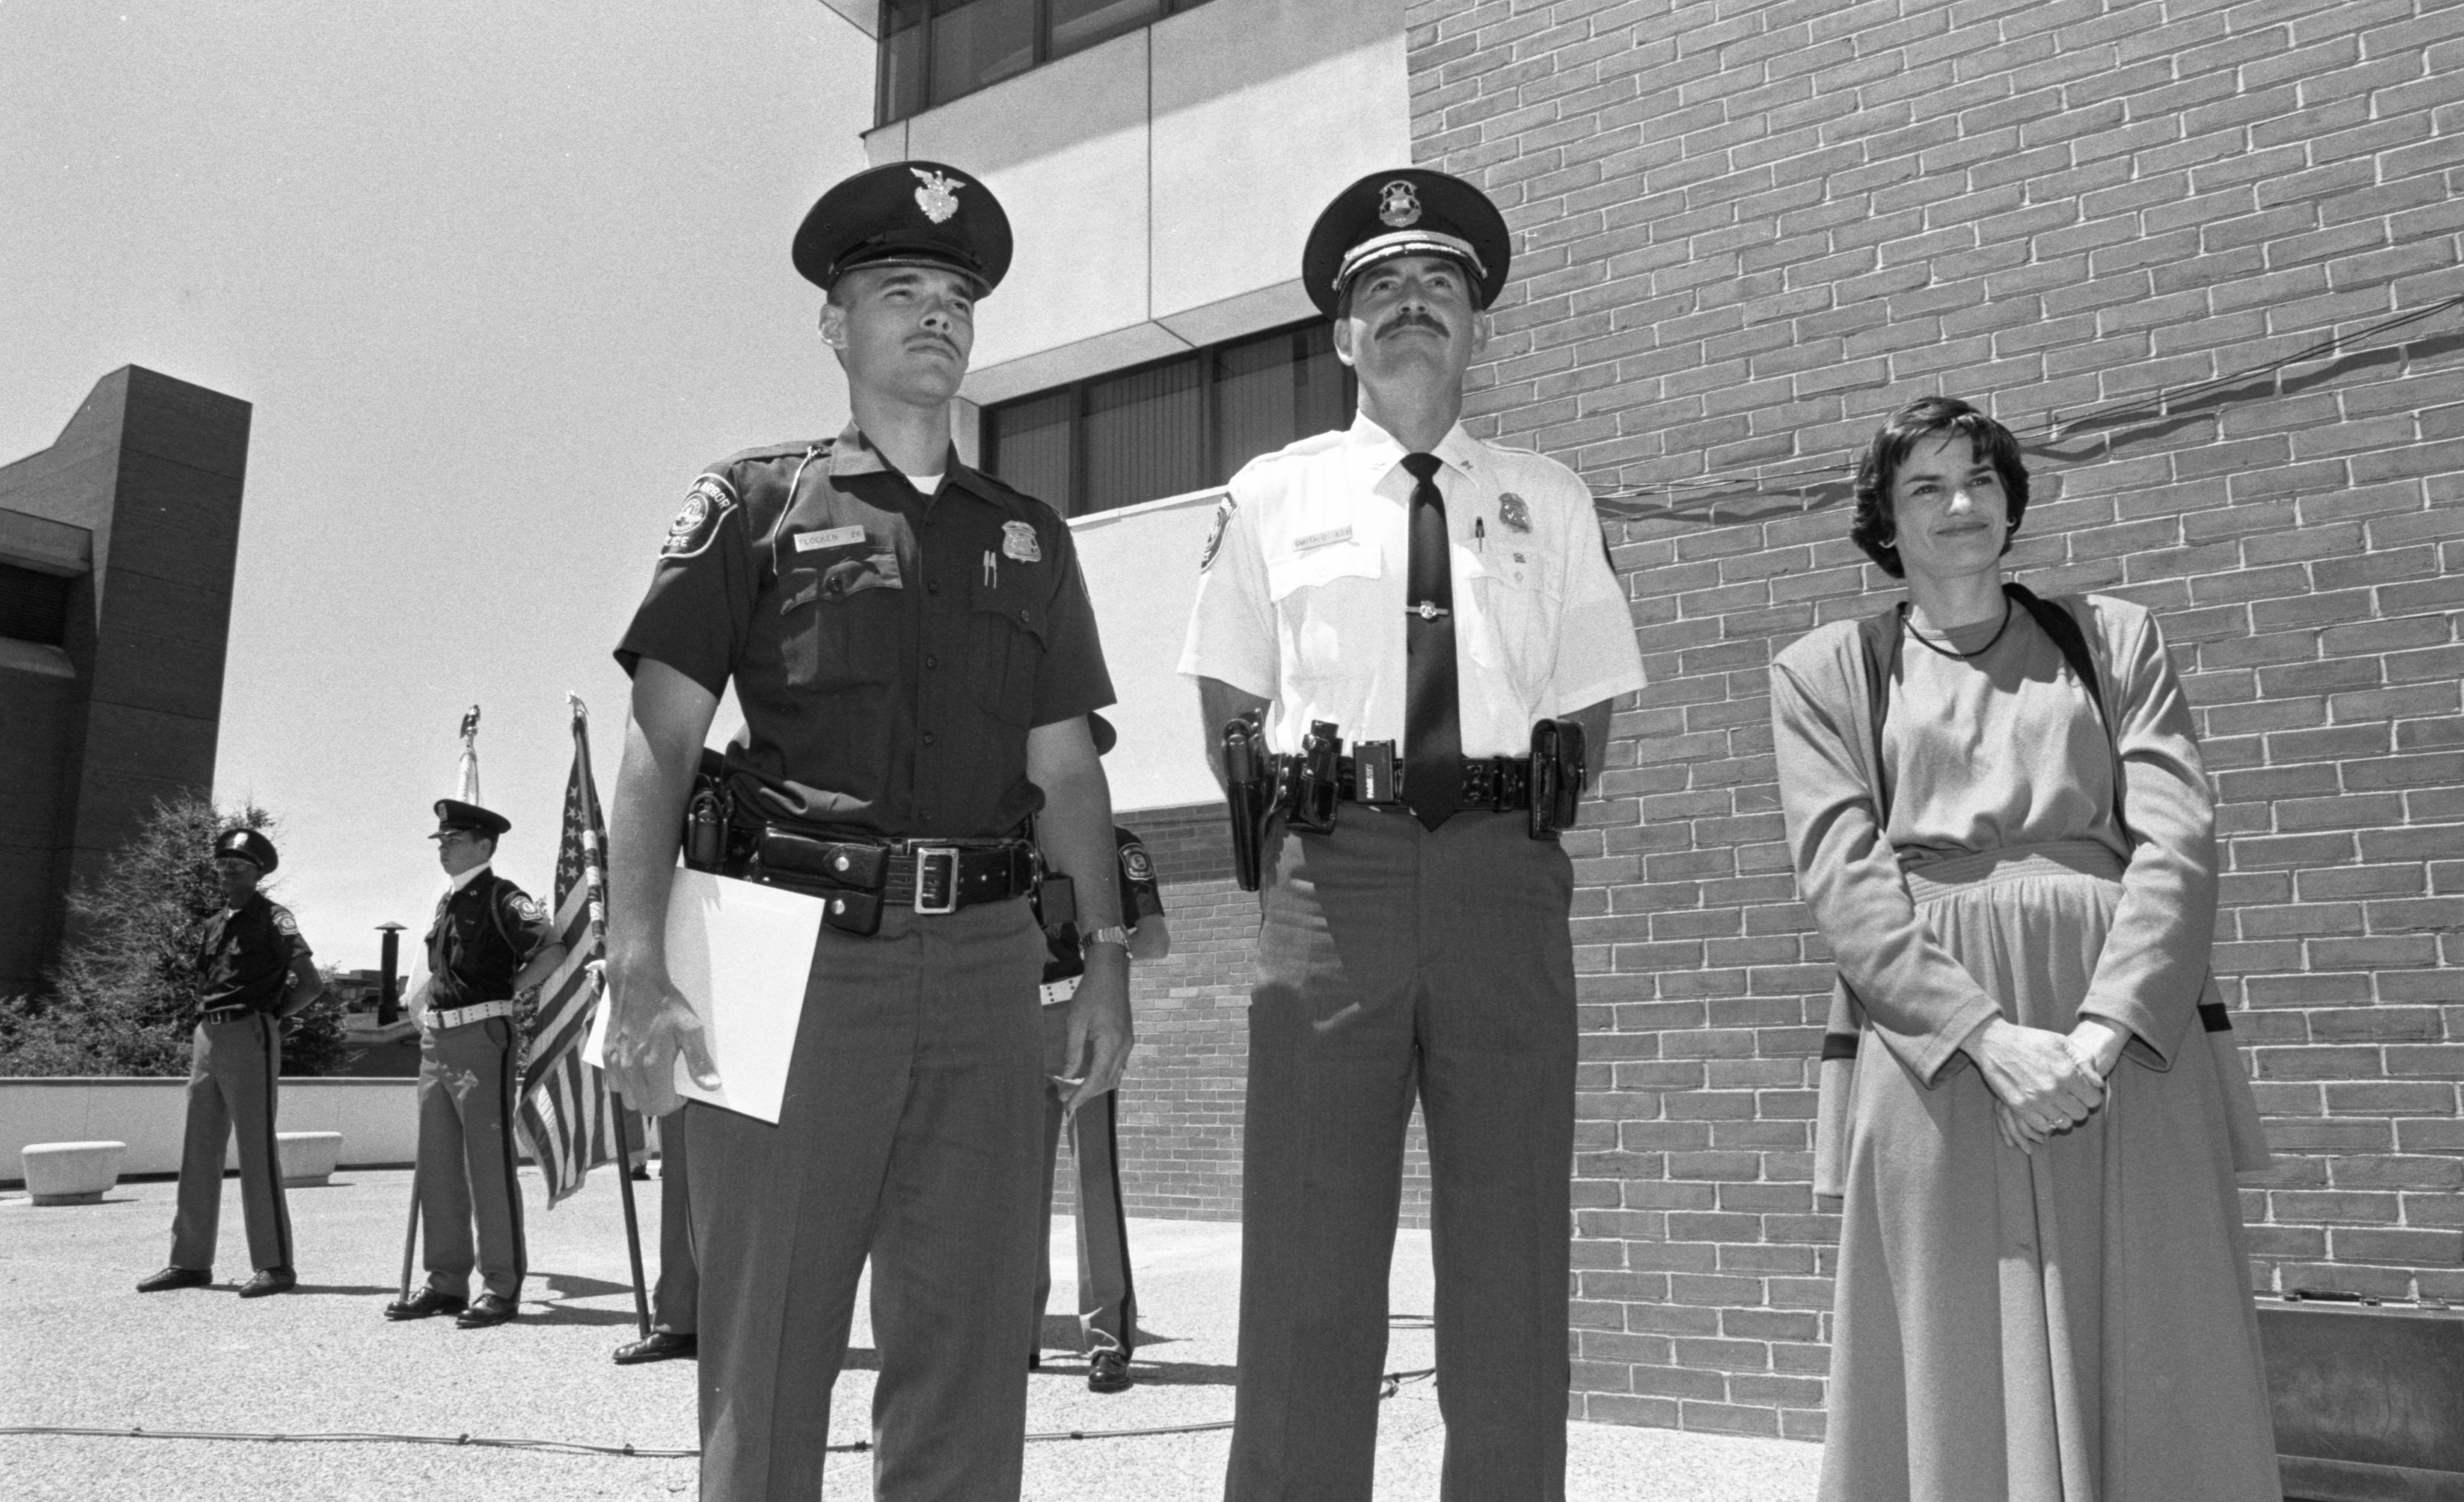 Officer Craig Flocken Honored At Ann Arbor Police Department Awards Ceremony, June 1991 image